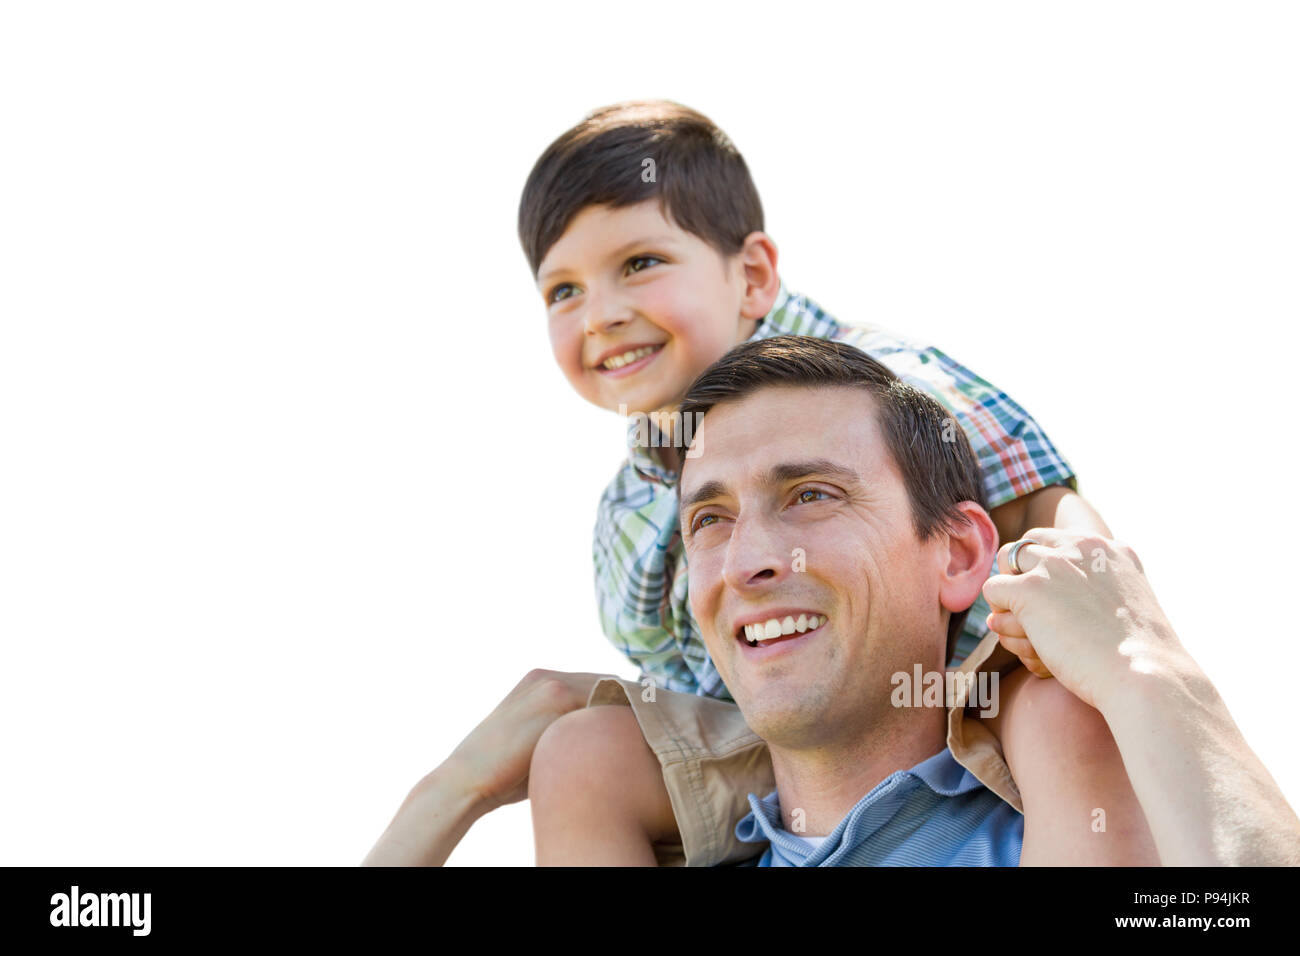 Father and Son Playing Piggyback Isolated on a White Background. - Stock Image